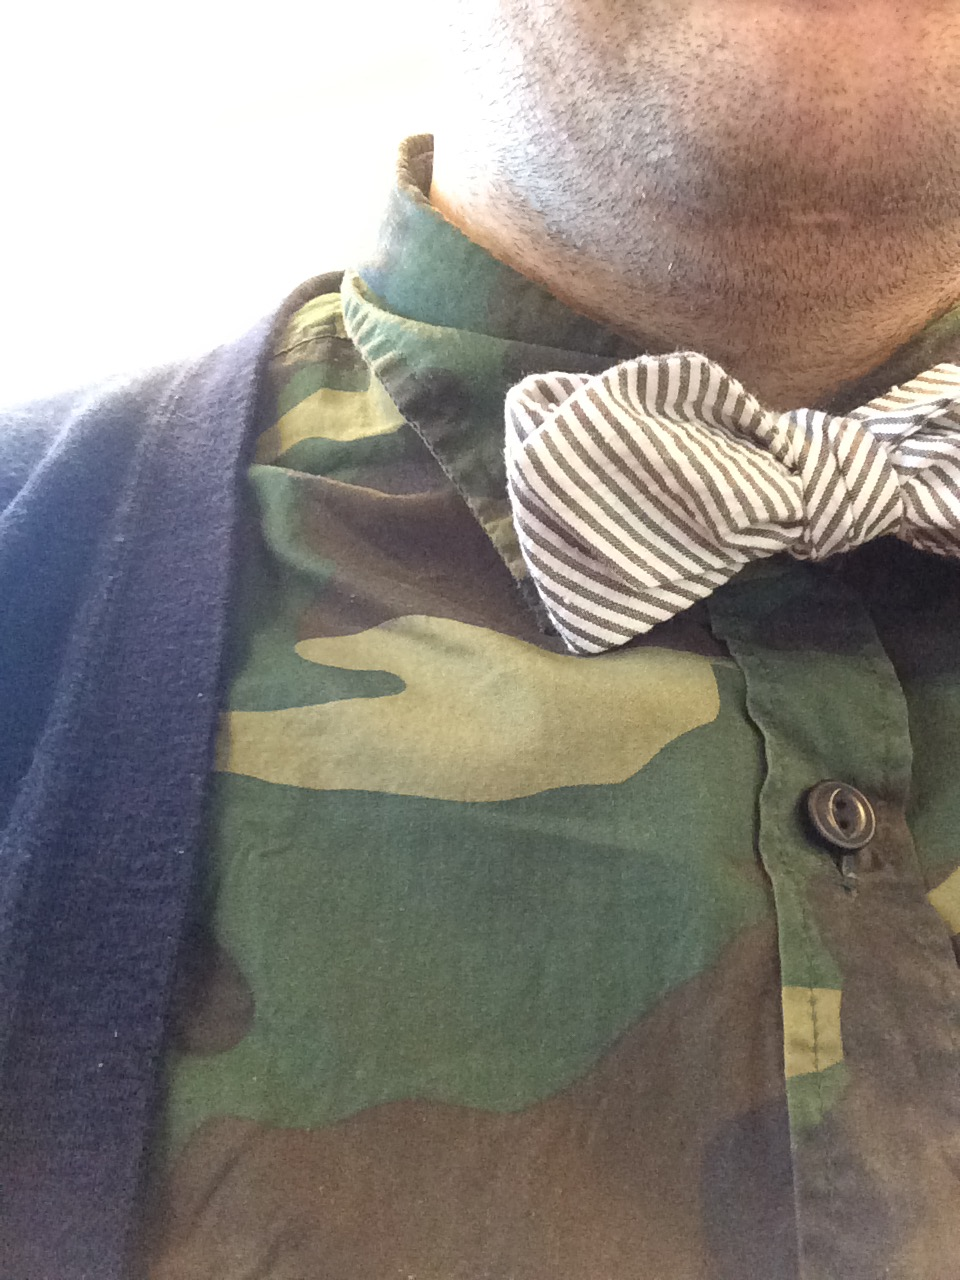 Forage bowtie pattern mixing